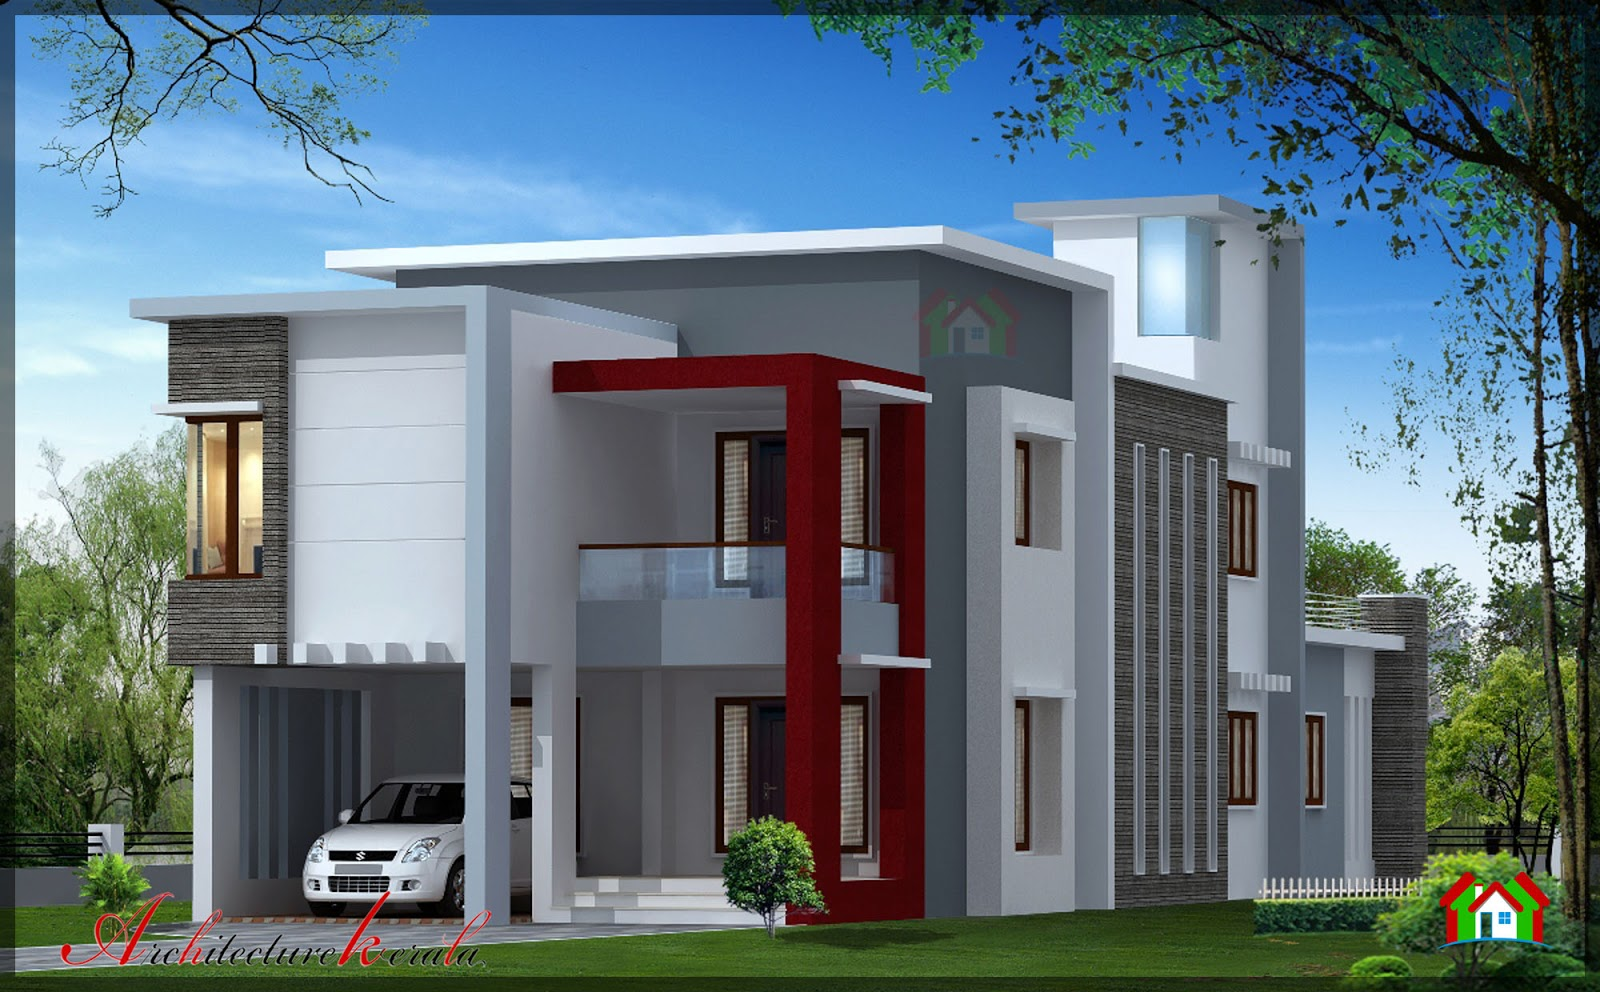 1700 square feet contemporary house design architecture for Home designs 2015